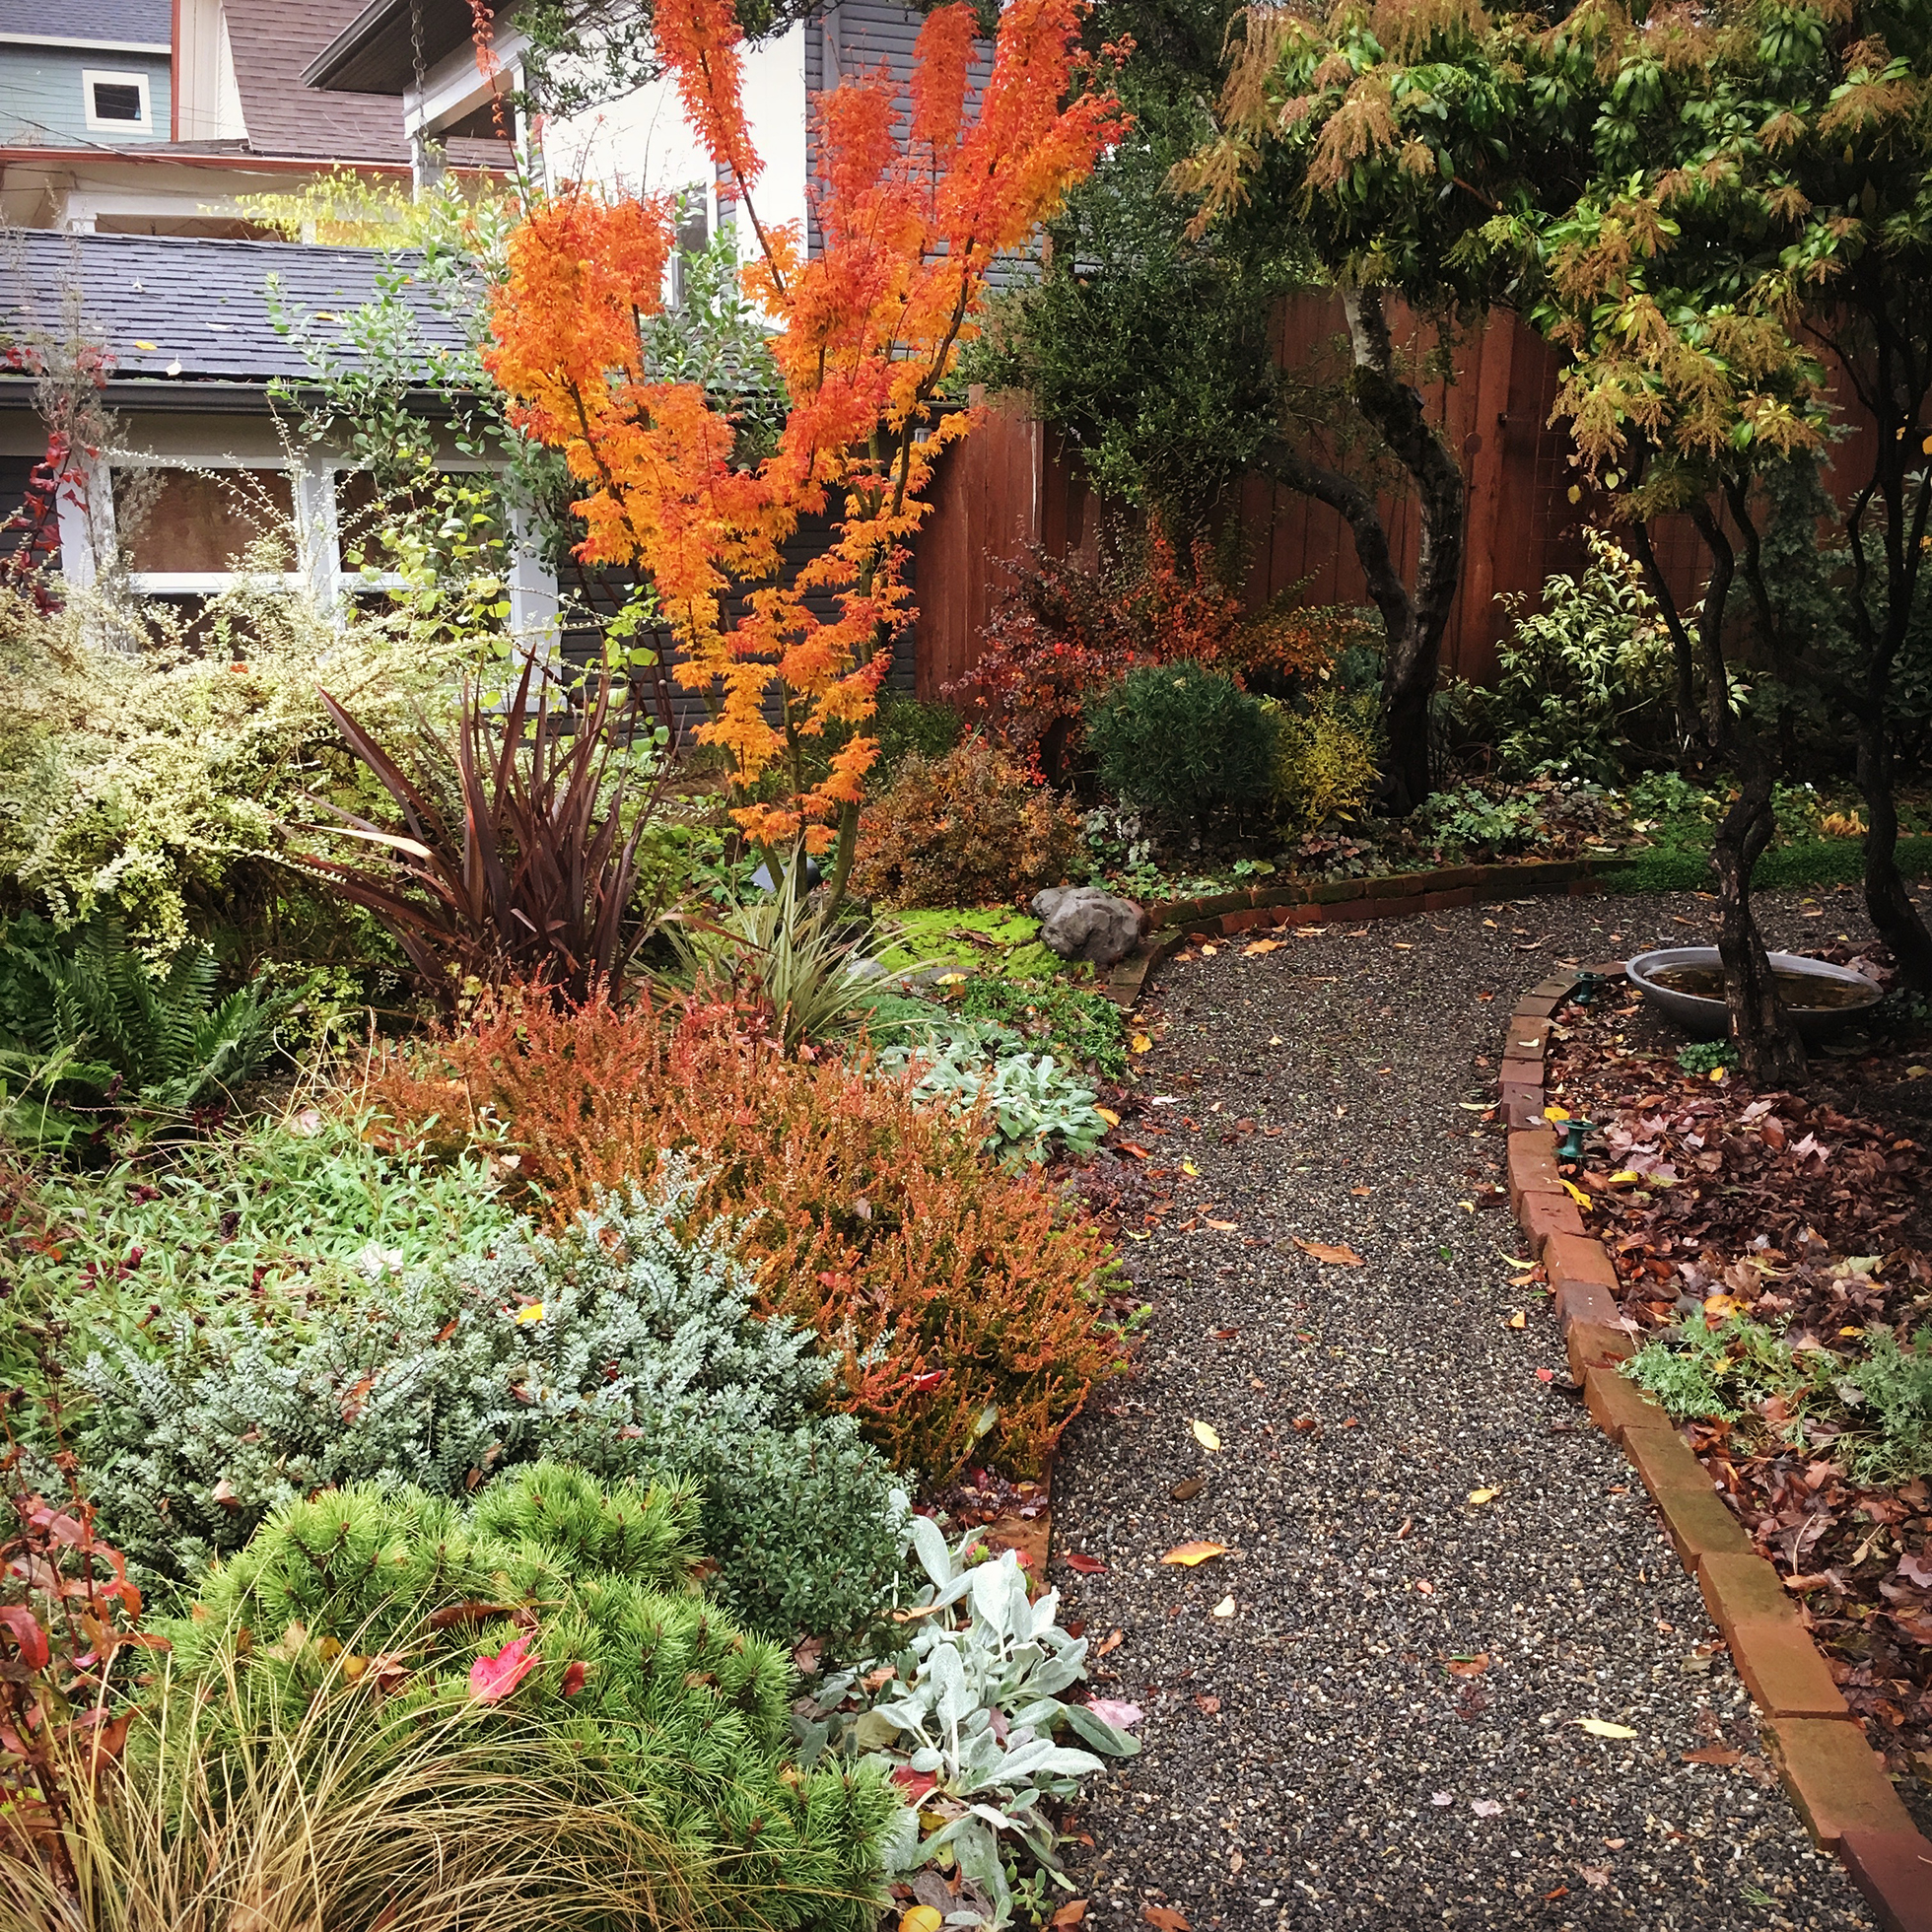 Garden path lined with bushes alive with fall colors